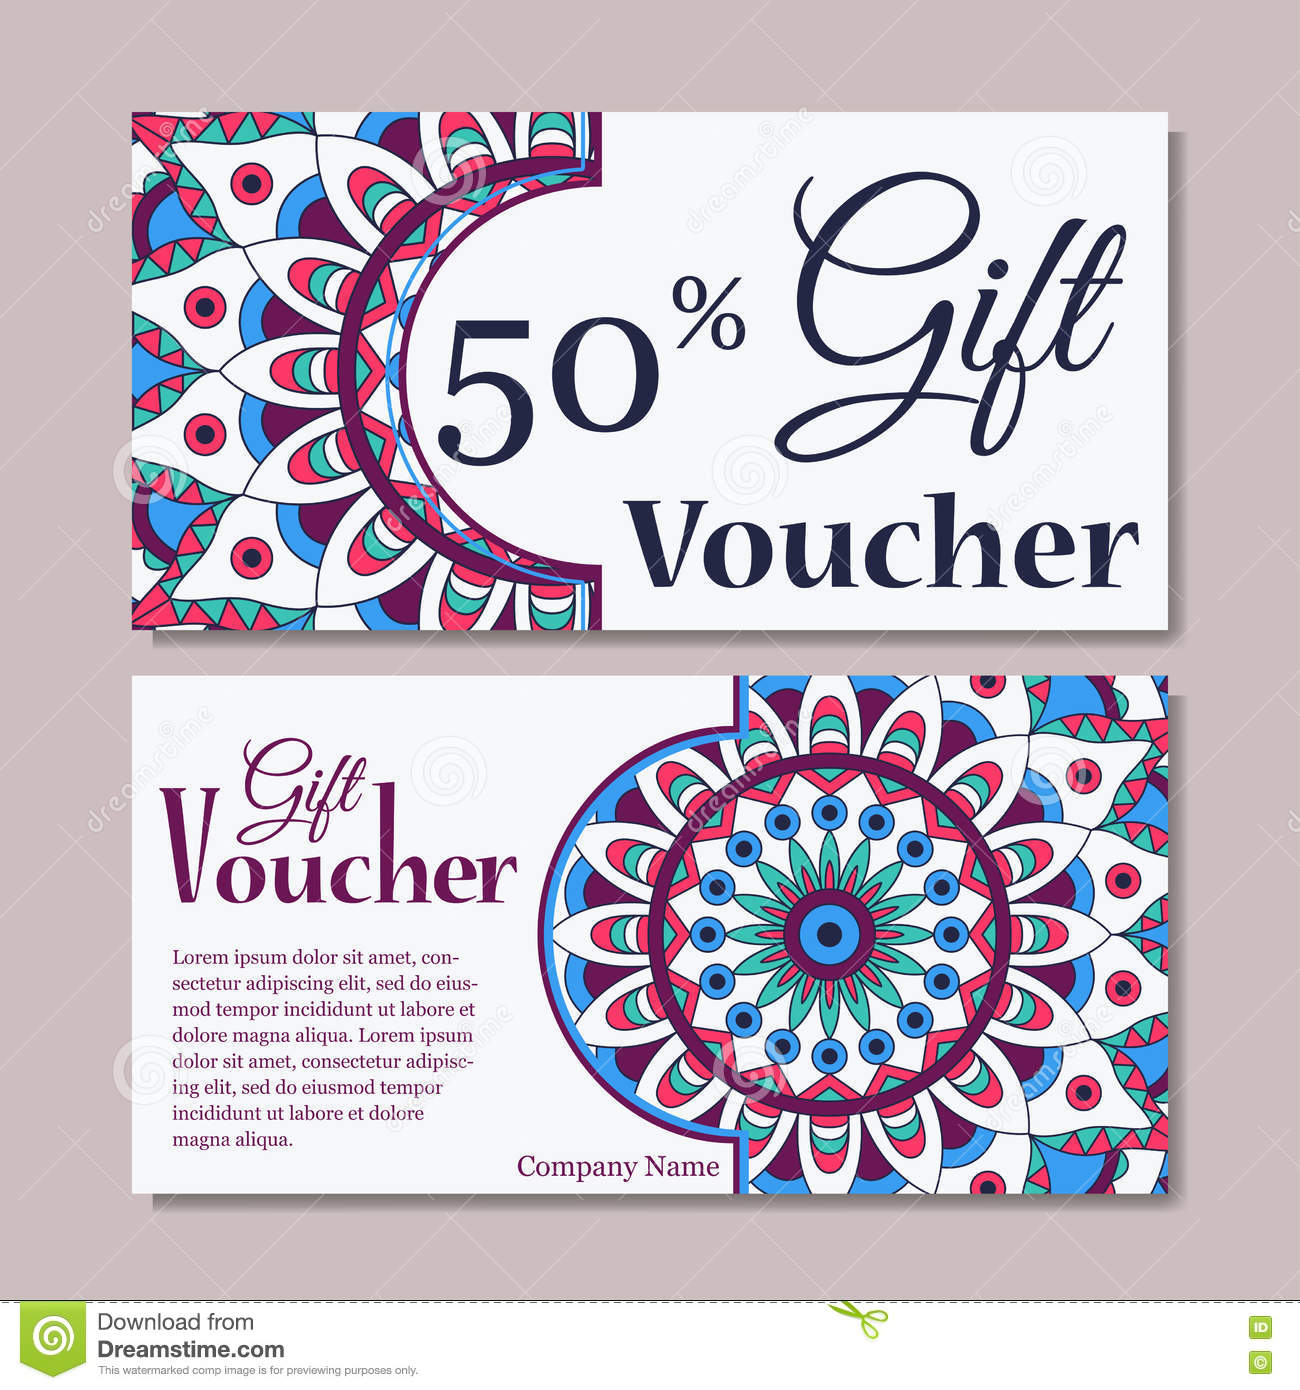 Gift Voucher Template With Mandala Design Certificate For